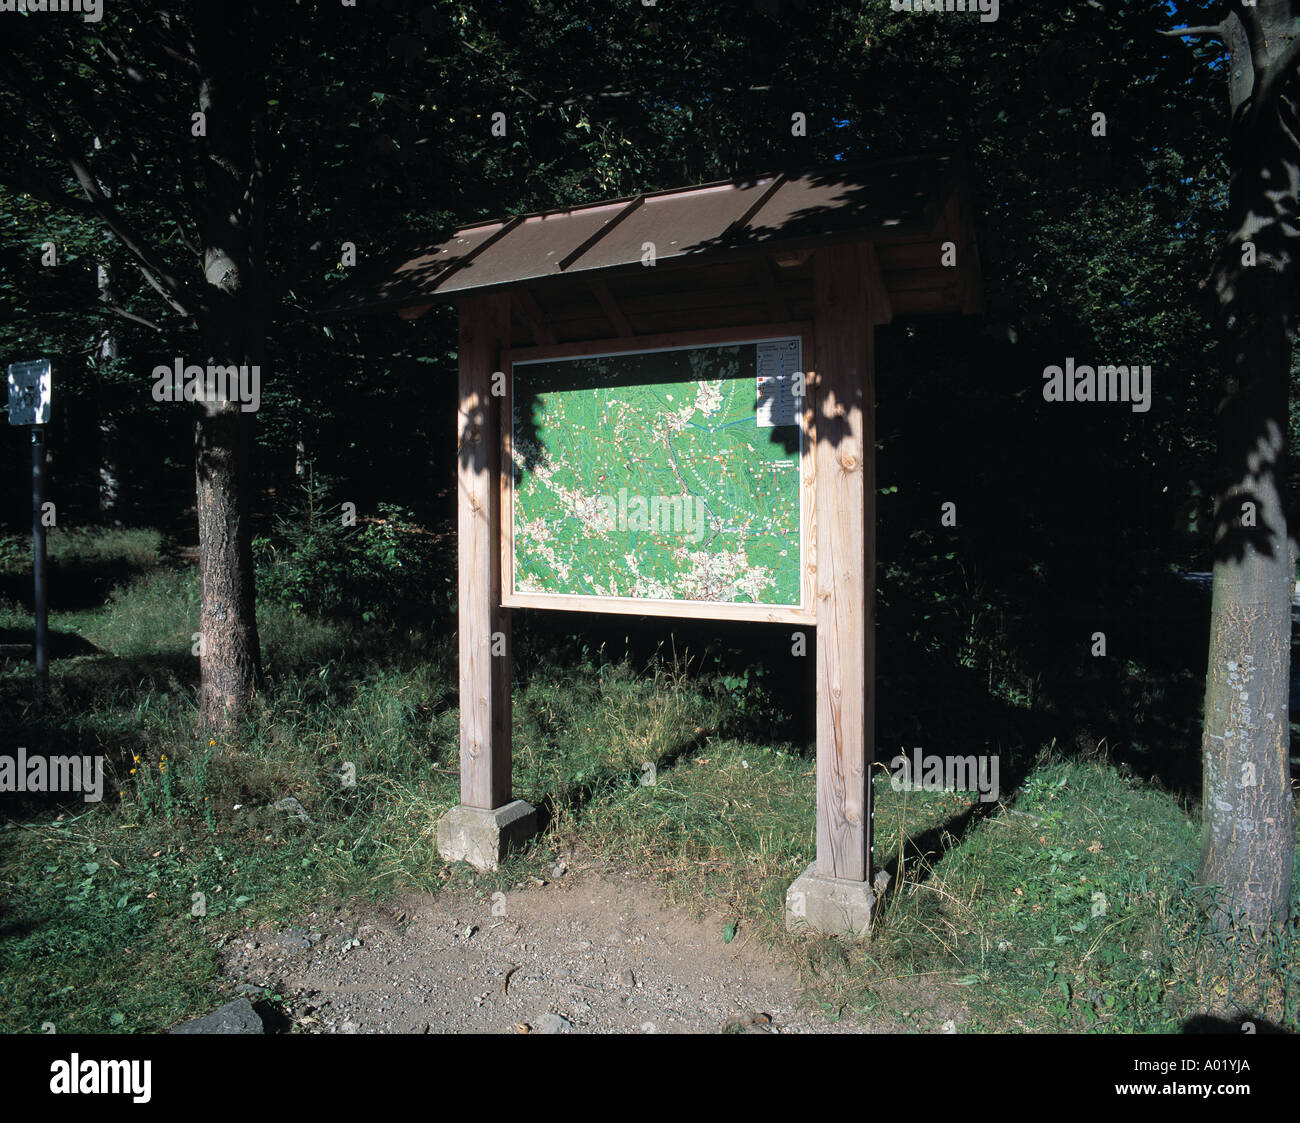 signpost, walking, wandering map, orientate, hobby free time, leisure time Stock Photo